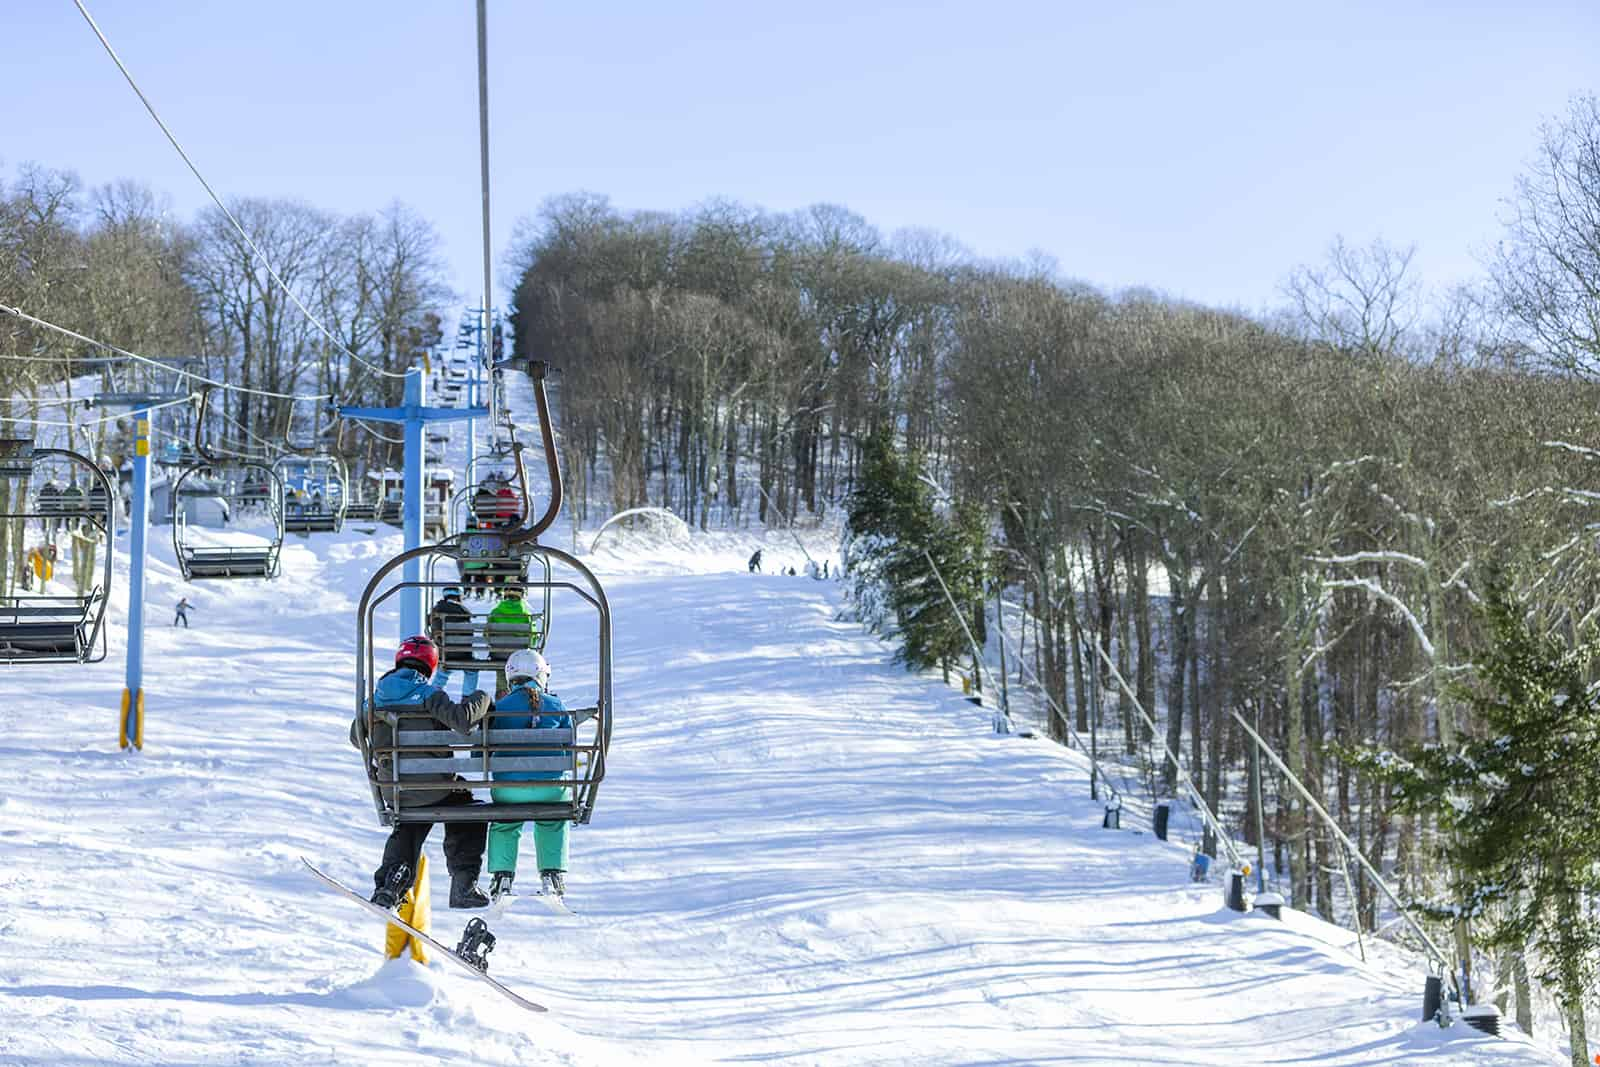 A pair of skiers riding the chairlift up to their slope at Cataloochee Ski Area.